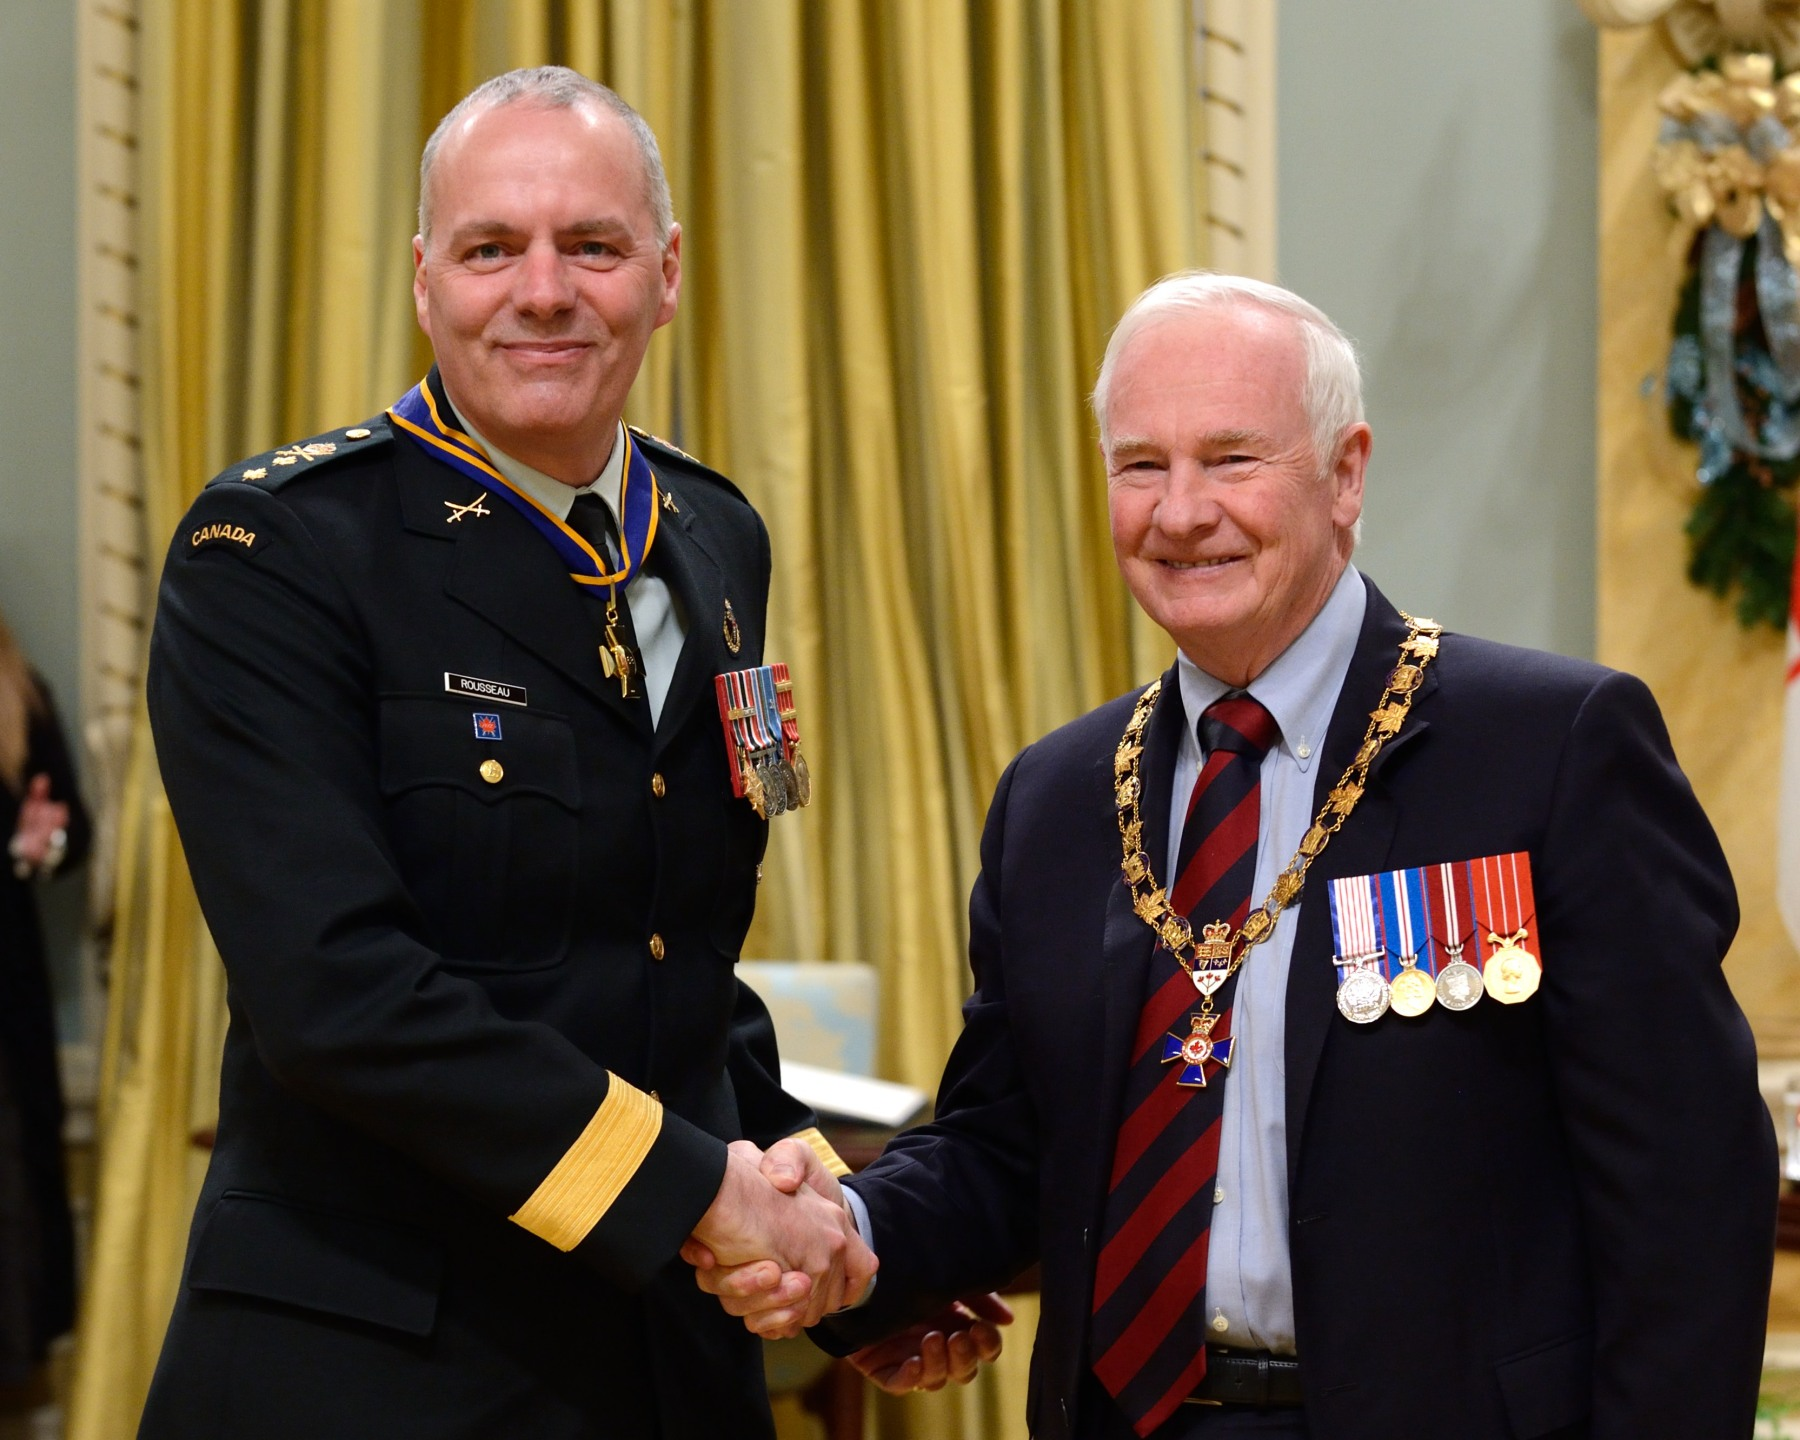 His Excellency presented the Order of Military Merit at the Commander level (C.M.M.) to Major-General Christian Rousseau, C.M.M., C.D., Chief of Defence Intelligence (Ottawa, Ont.).